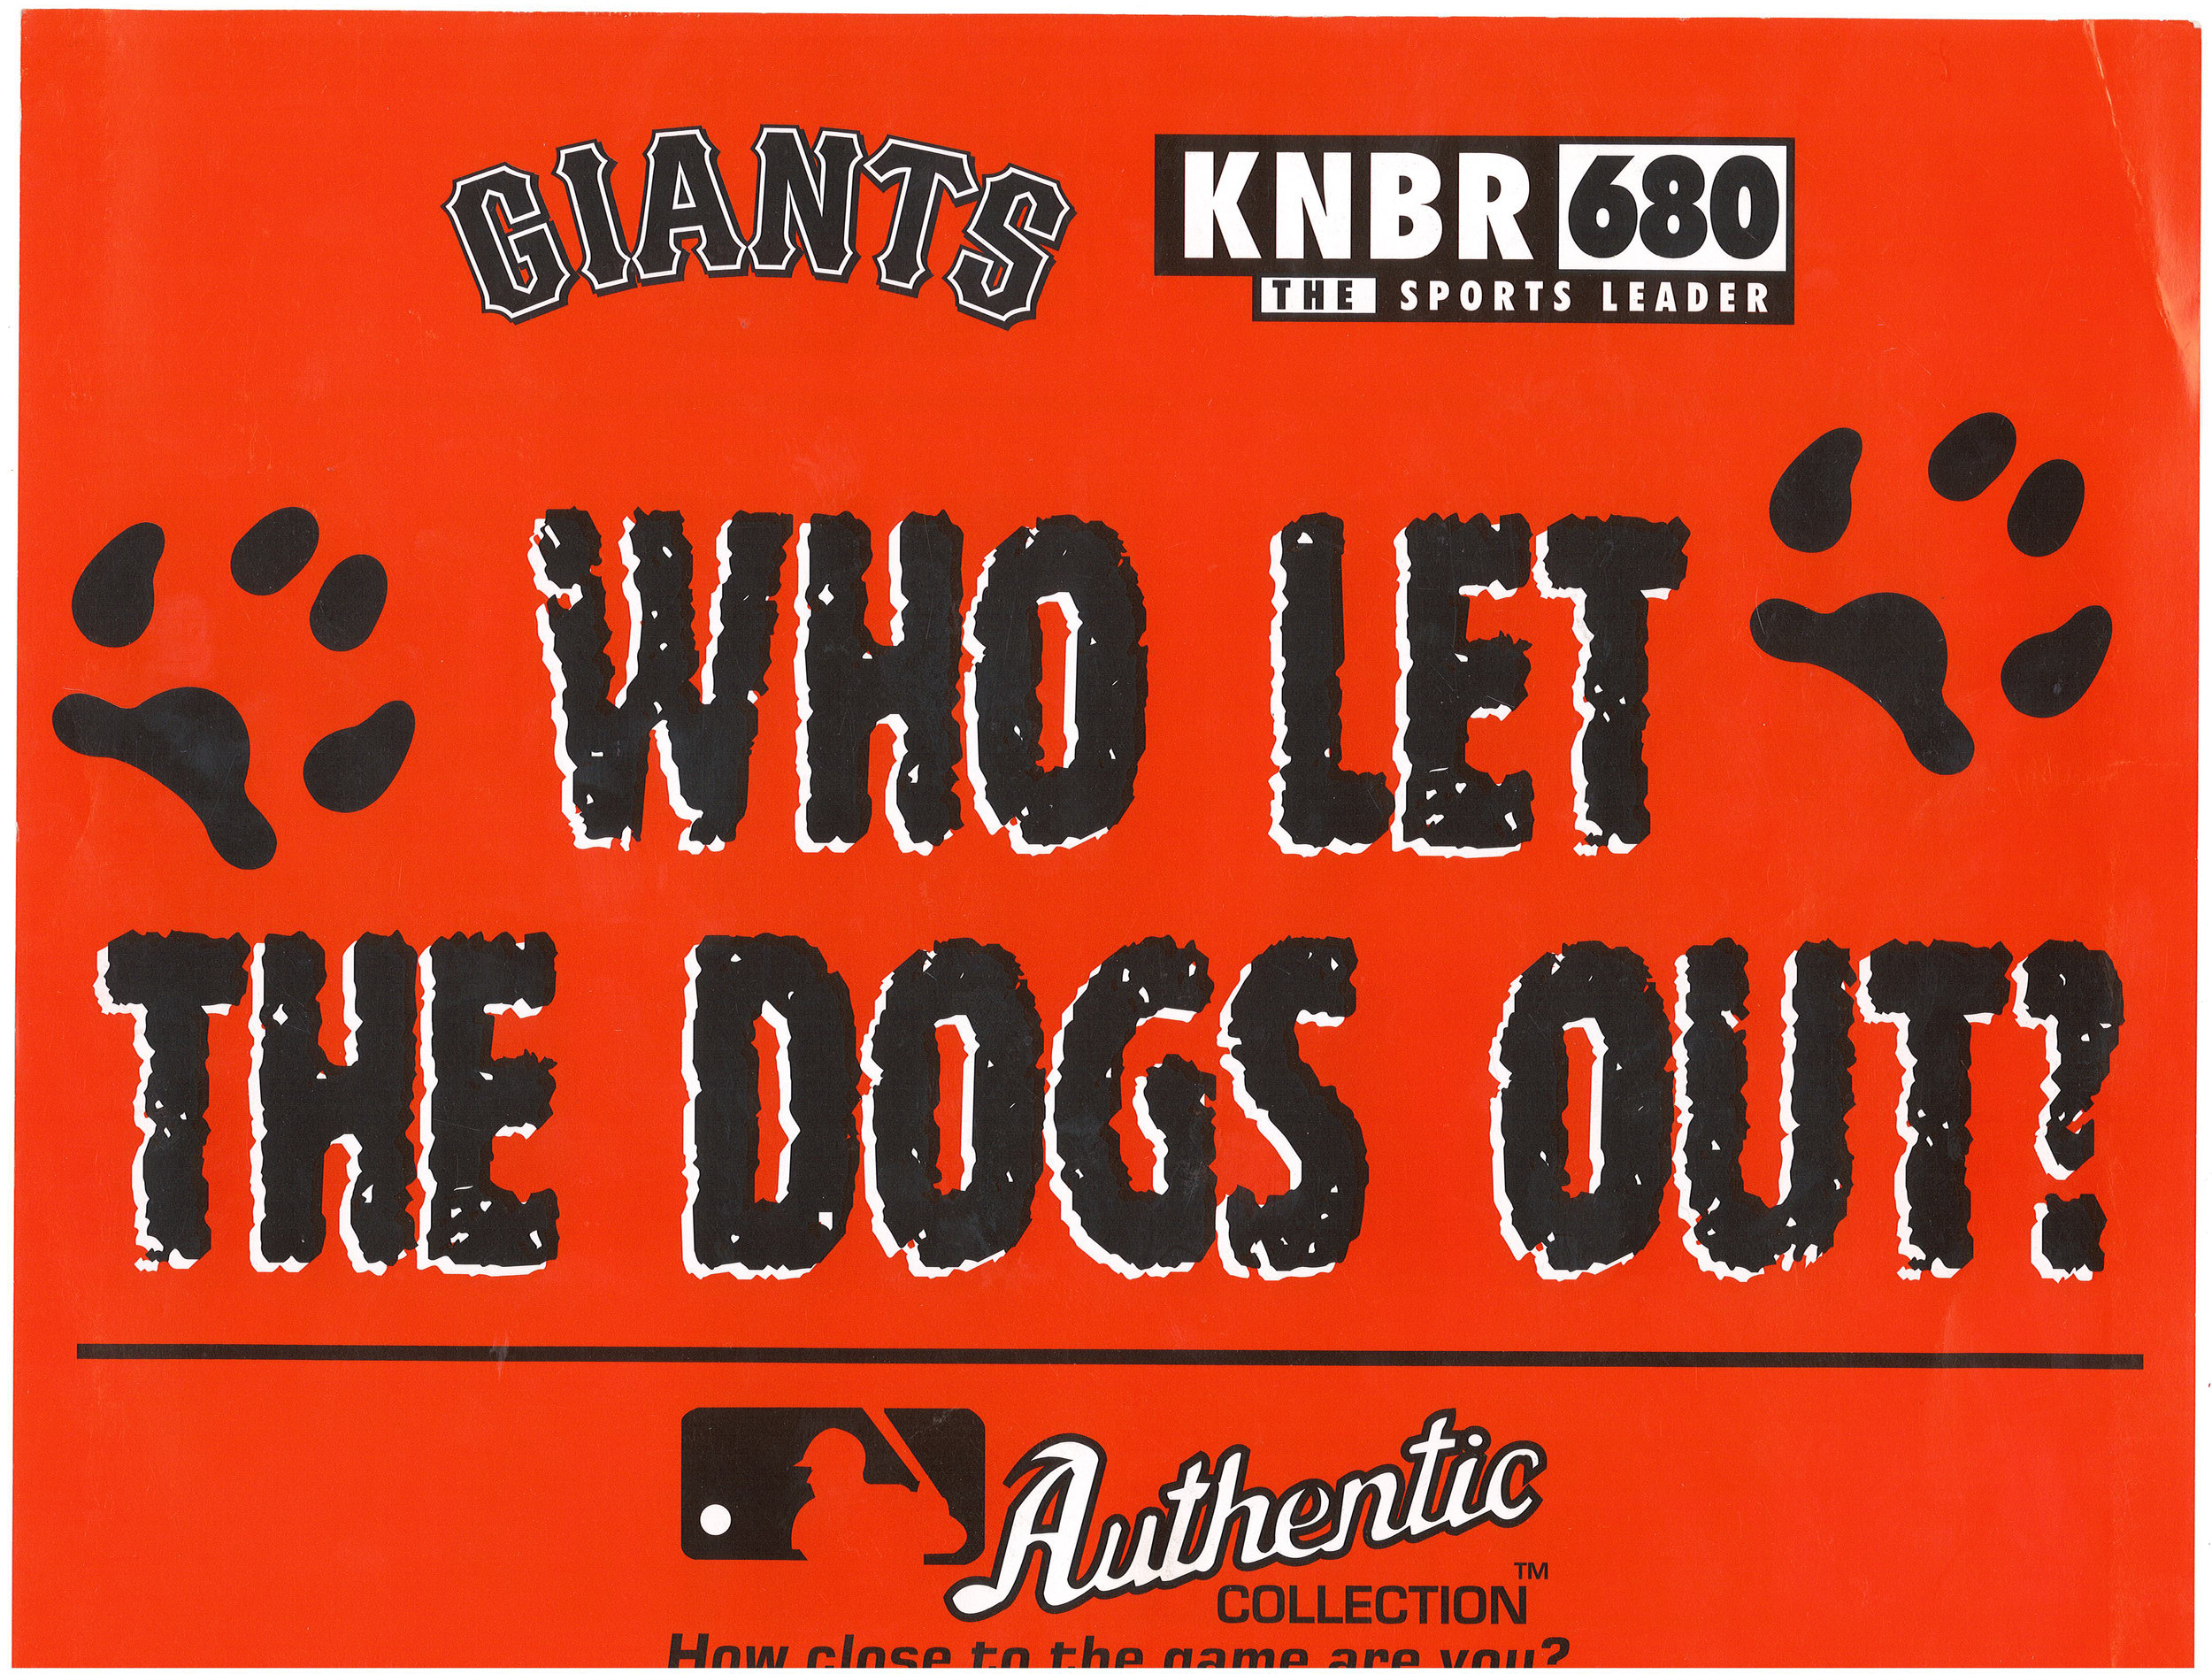 WLWLTDOO-_-EPHEMERA-GIANTS_KNBR-FAN_SIGN-FRONT.jpg